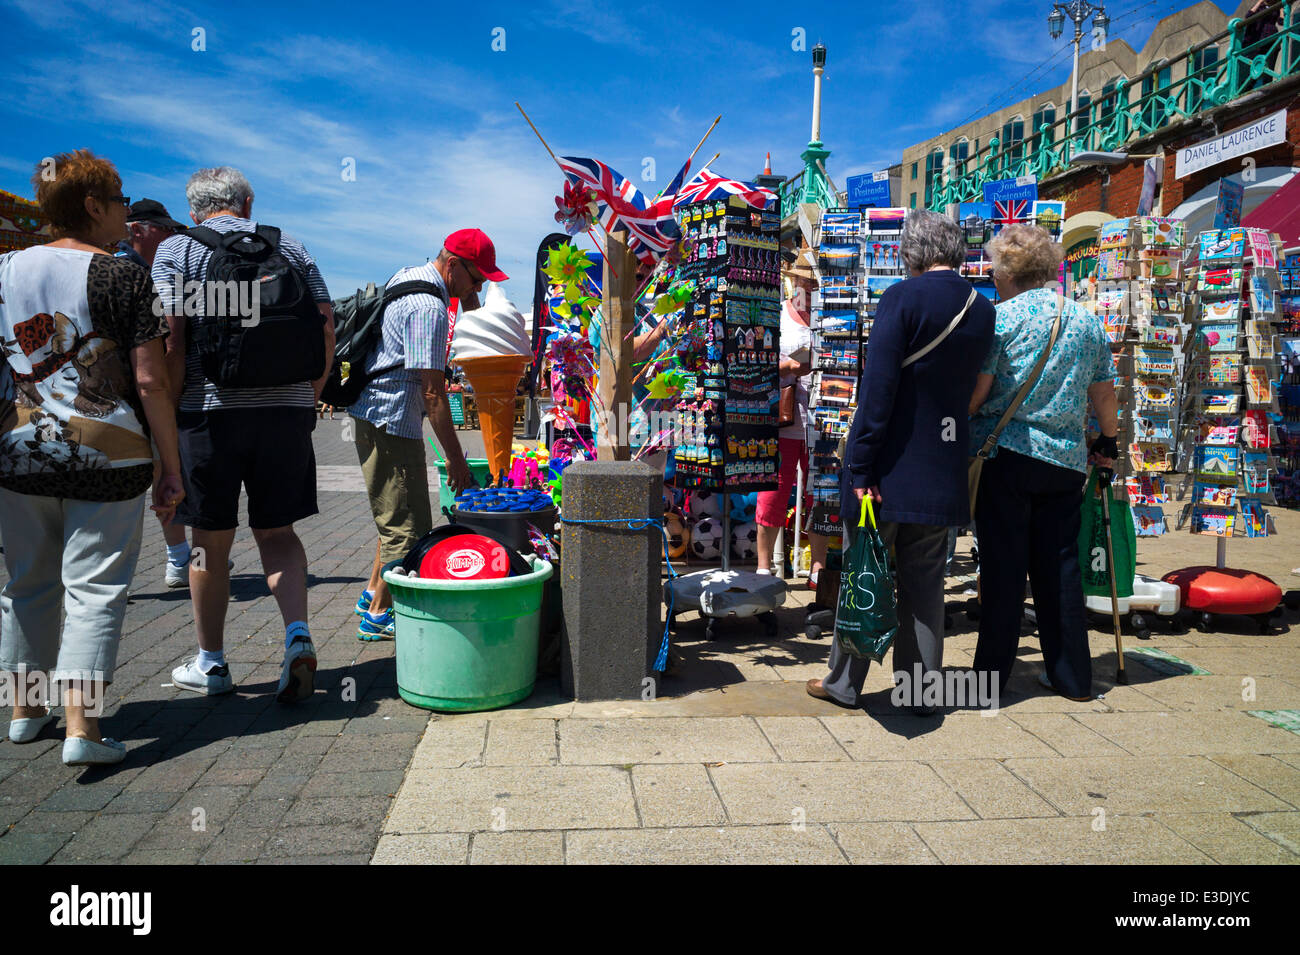 Tourists buying postcards on the Broadwalk at Brighton beach, England, UK - Leica M9 picture - Stock Image